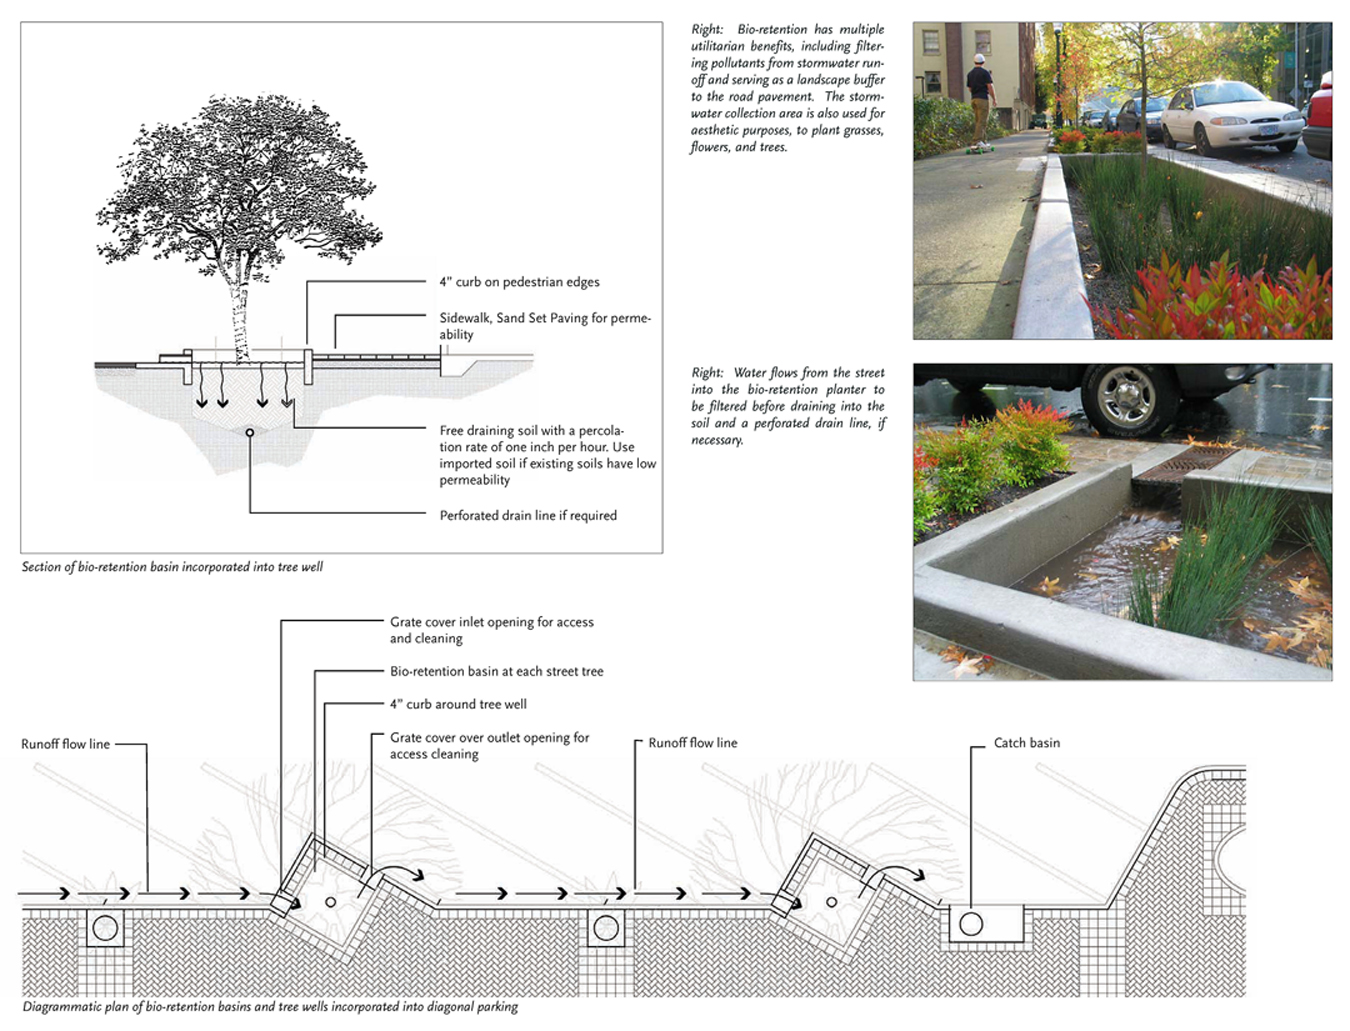 Another example of intertwining design strategies with implementation strategies is to provide enough detail [e.g. of bioretention basins, tree wells and diagonal parking] such that the plan can be implemented with great ease.  Source:  Moule & Polyzoides Architects and Urbanists